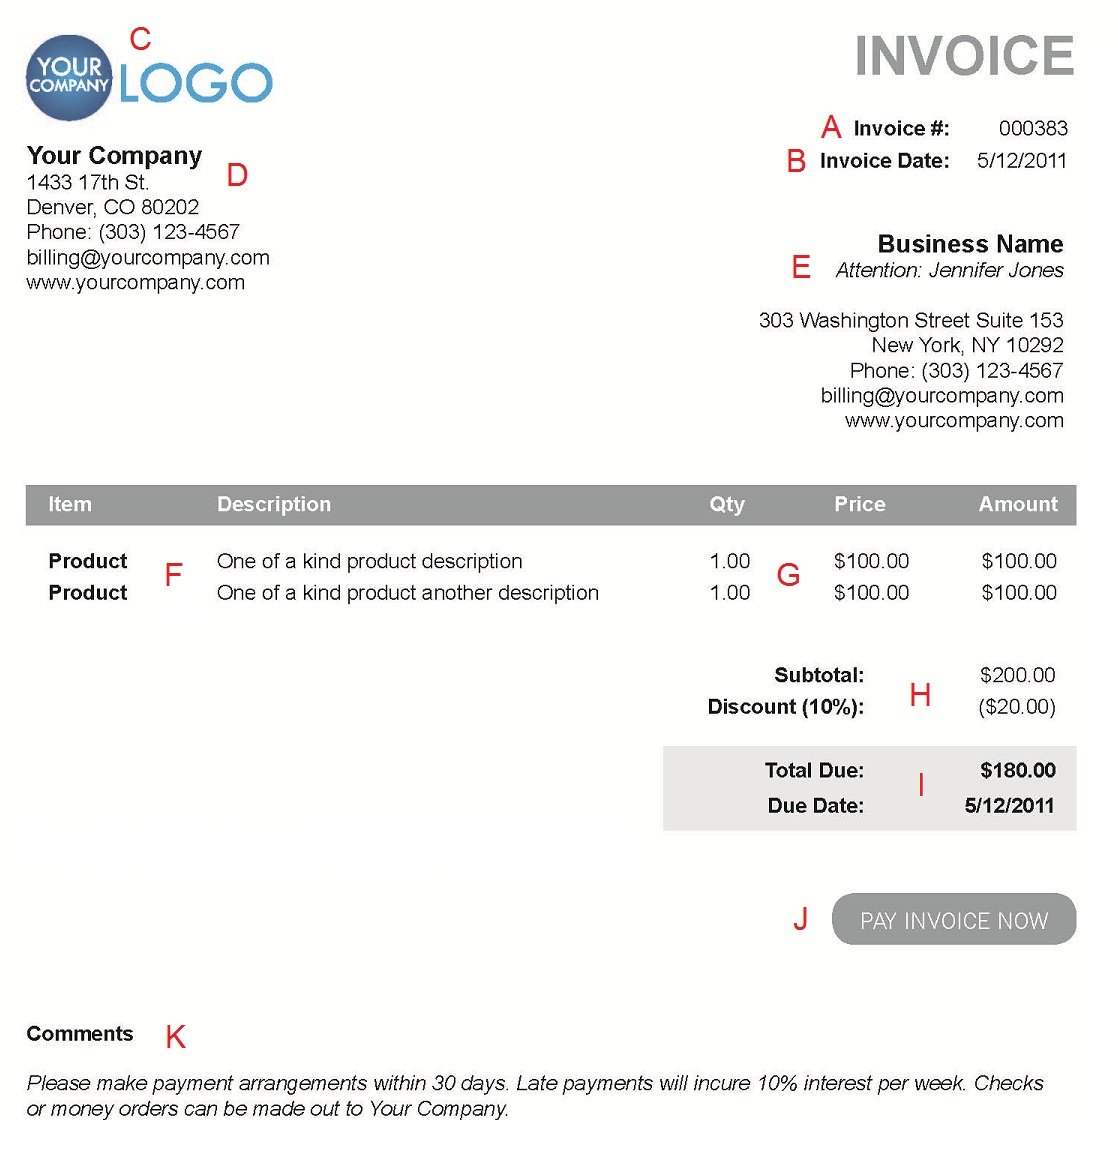 Ultrablogus  Pleasing The  Different Sections Of An Electronic Payment Invoice With Fascinating A  With Beautiful Invoice Print Out Also Net  Days Invoice In Addition Invoice Sales And Invoice Template Pdf Free As Well As Overdue Invoice Sample Letter Additionally Maintenance Invoice From Paysimplecom With Ultrablogus  Fascinating The  Different Sections Of An Electronic Payment Invoice With Beautiful A  And Pleasing Invoice Print Out Also Net  Days Invoice In Addition Invoice Sales From Paysimplecom